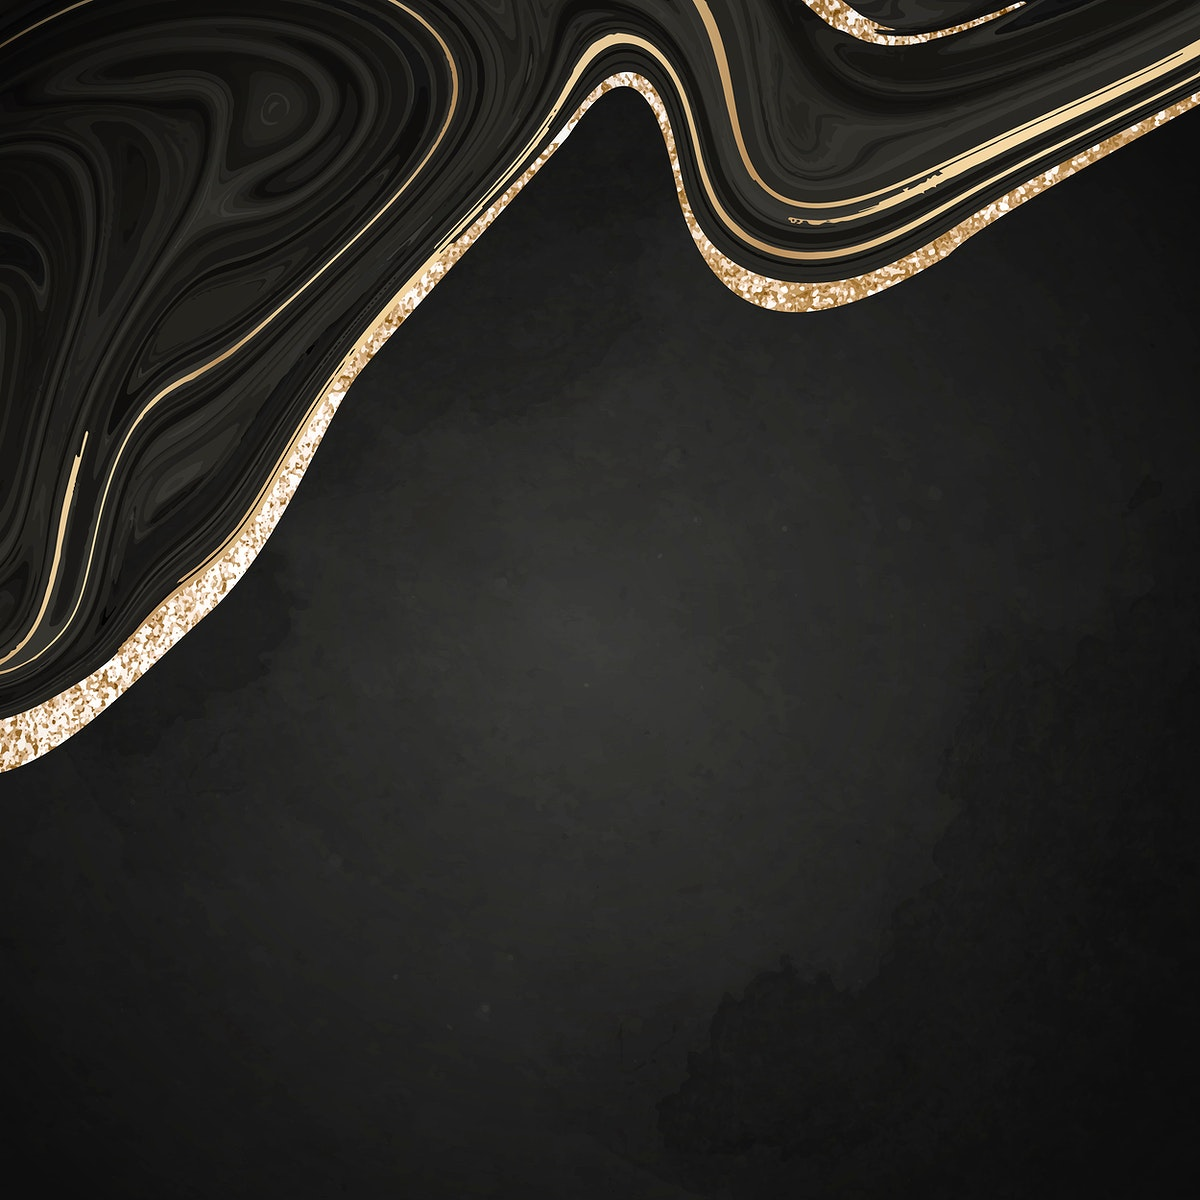 Gold and black fluid patterned background vector